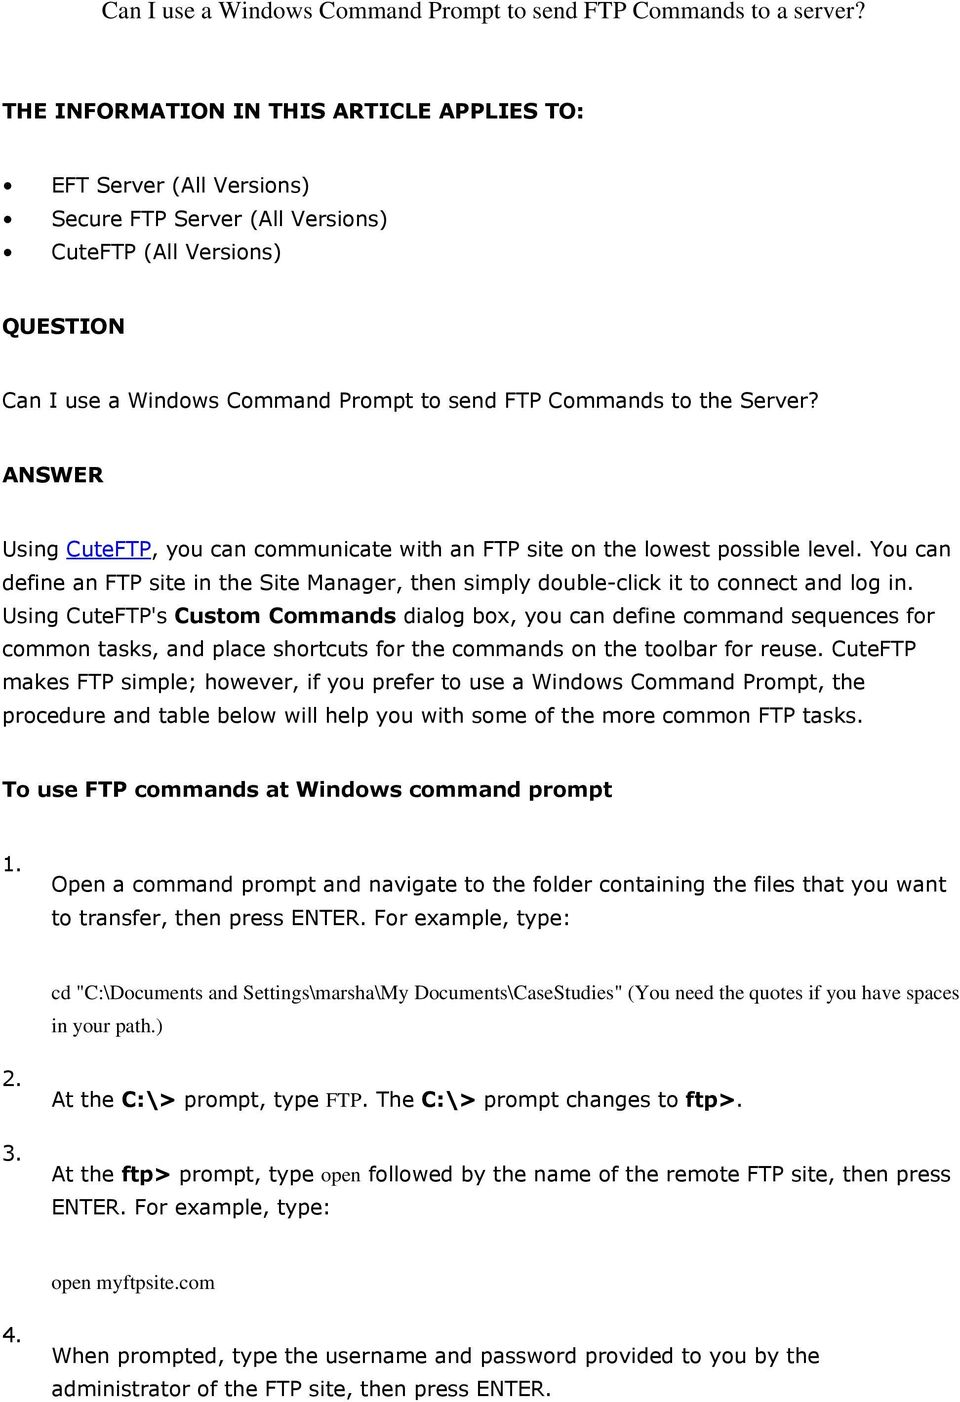 Can I use a Windows Command Prompt to send FTP Commands to a